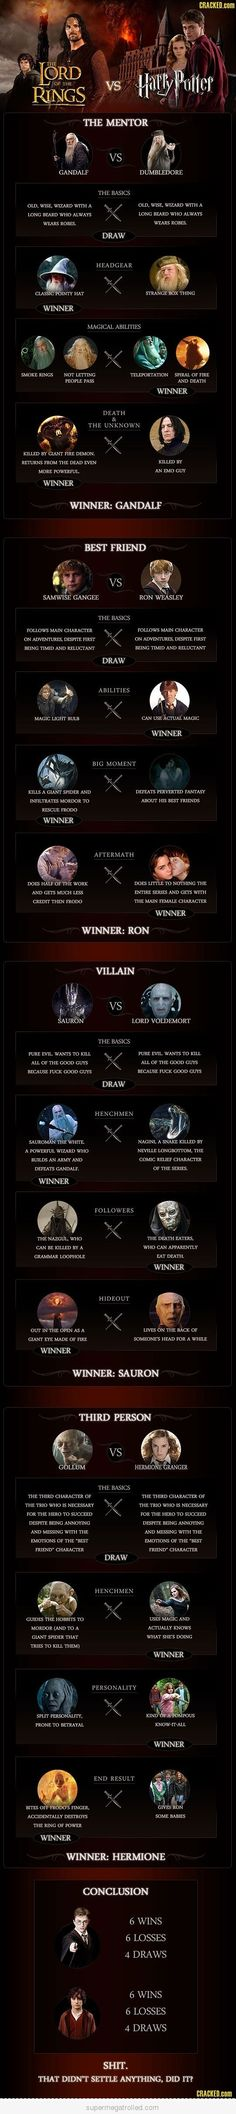 Lord of the Rings vs Harry Potter... The Harry potter disses are so inaccurate!!!! There is nooooo way hermione can loose anything!